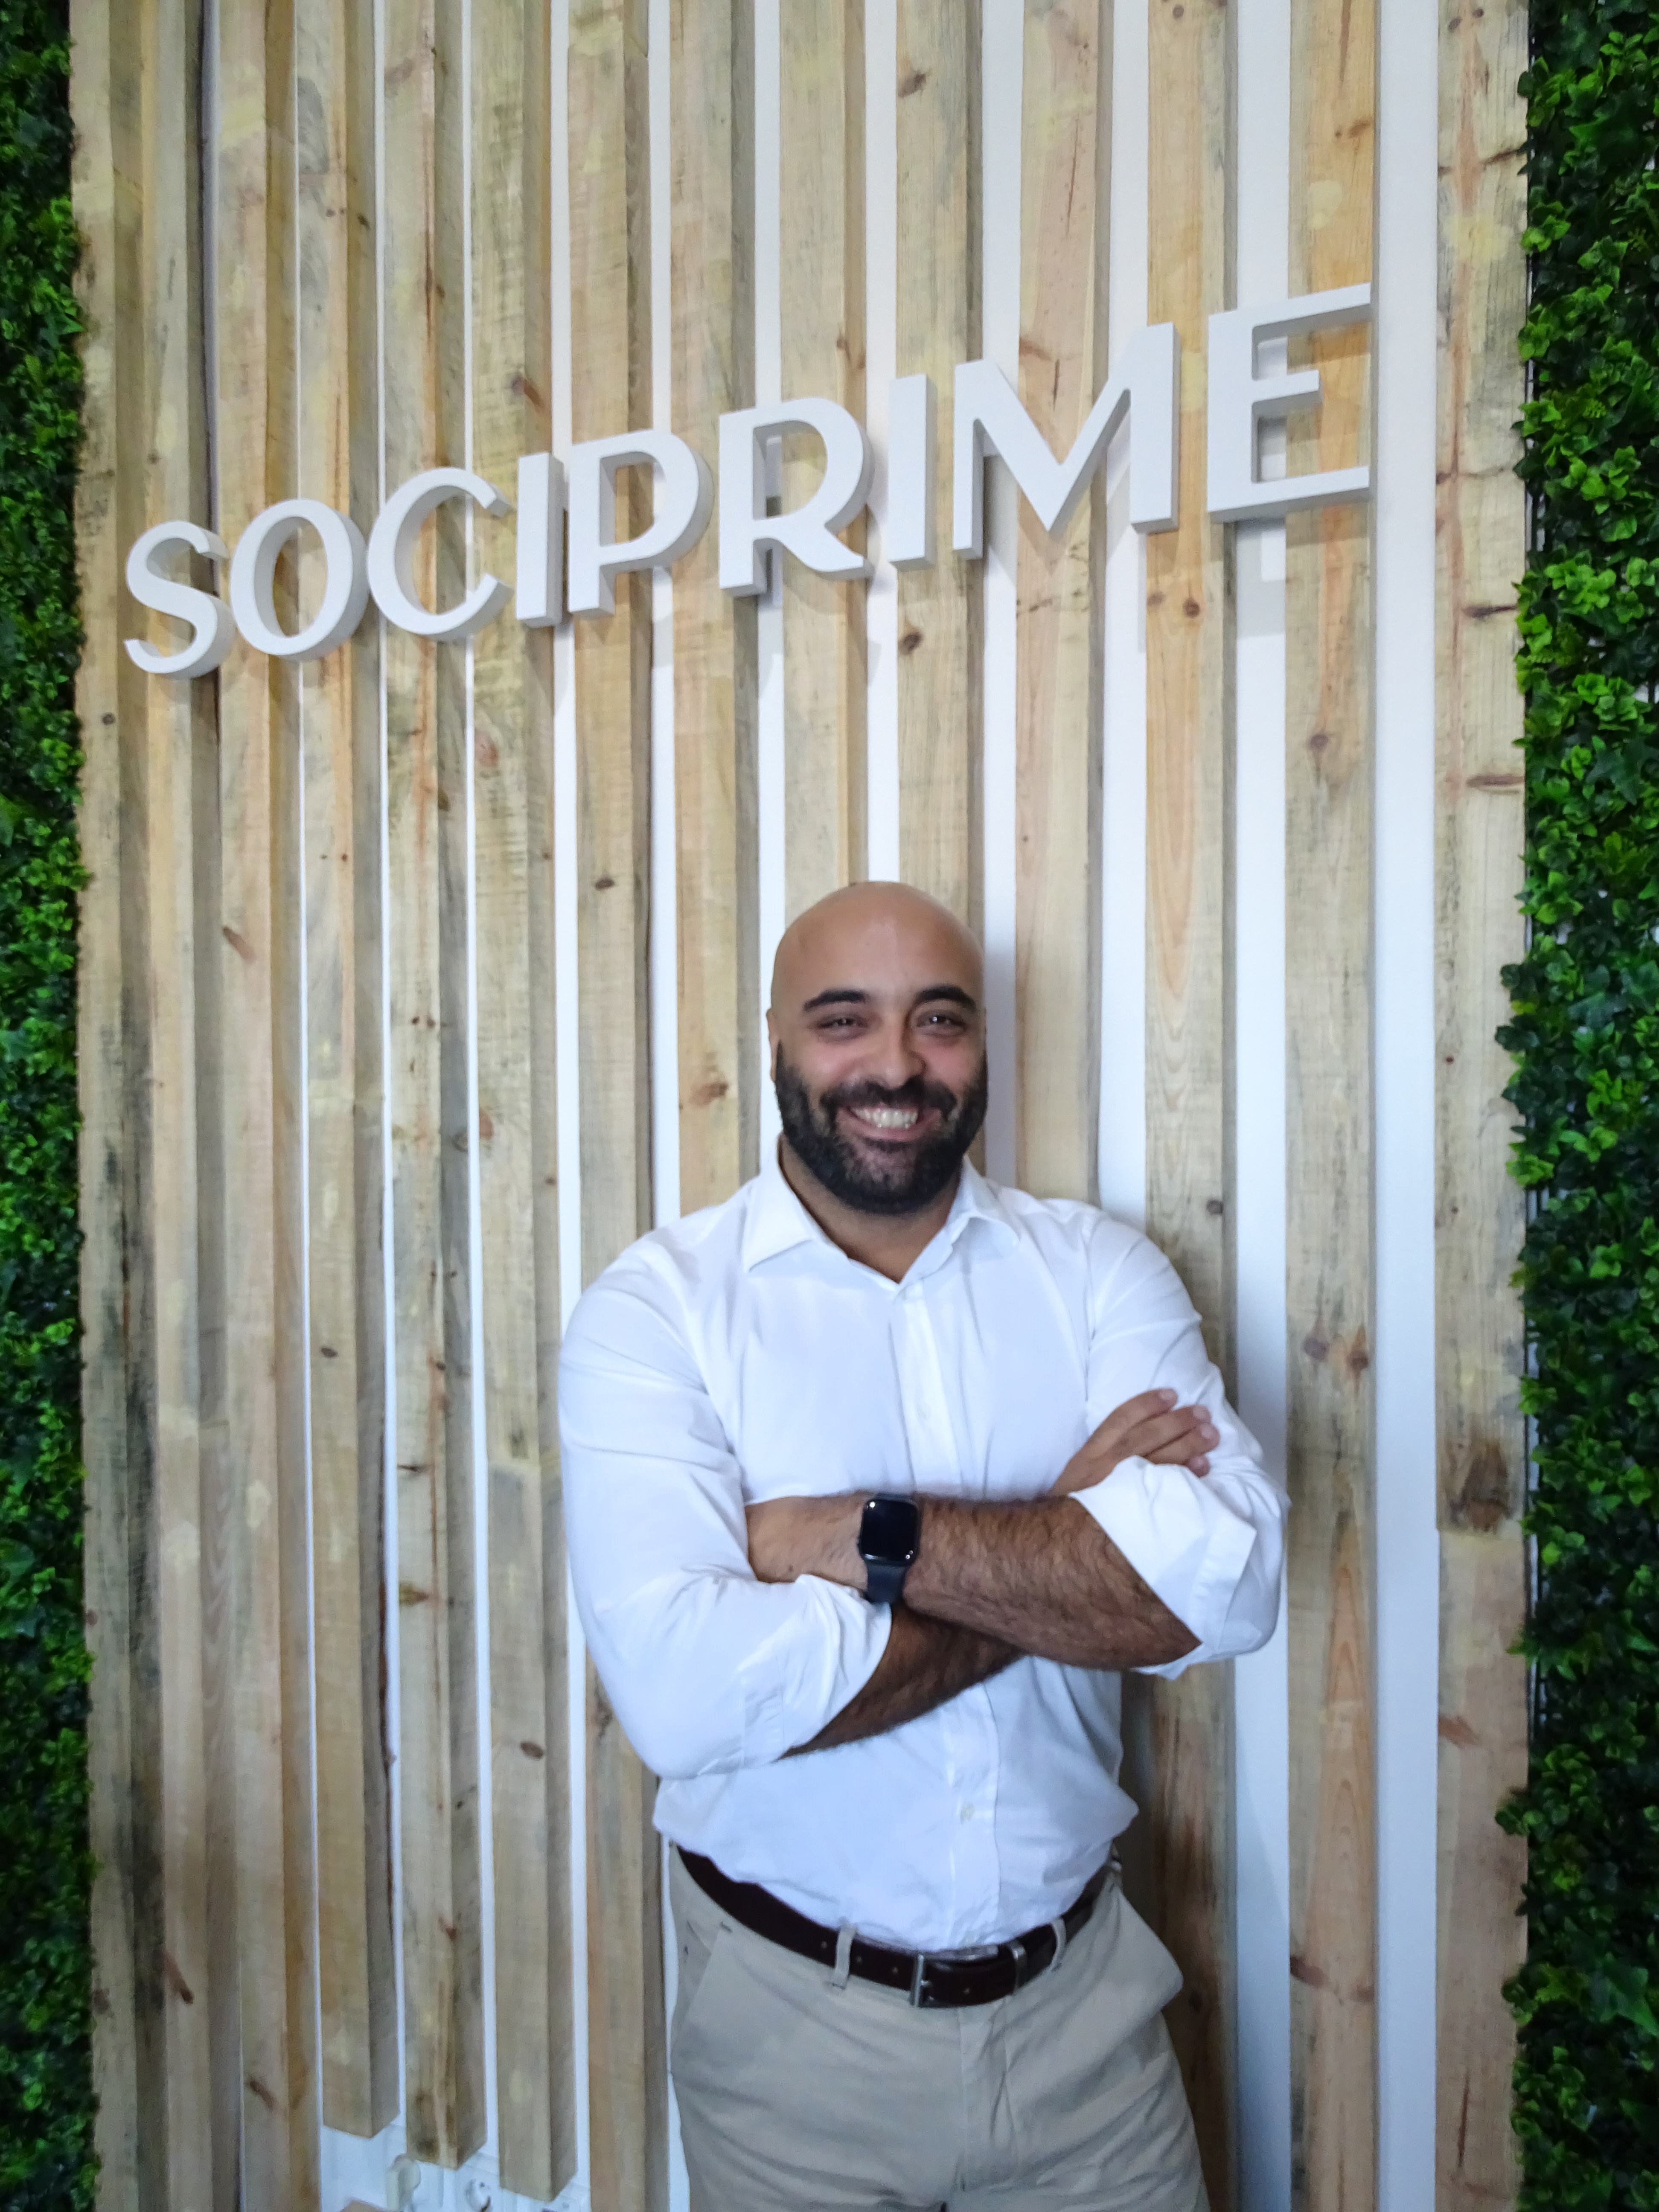 Vexillum supports Sociprime certification